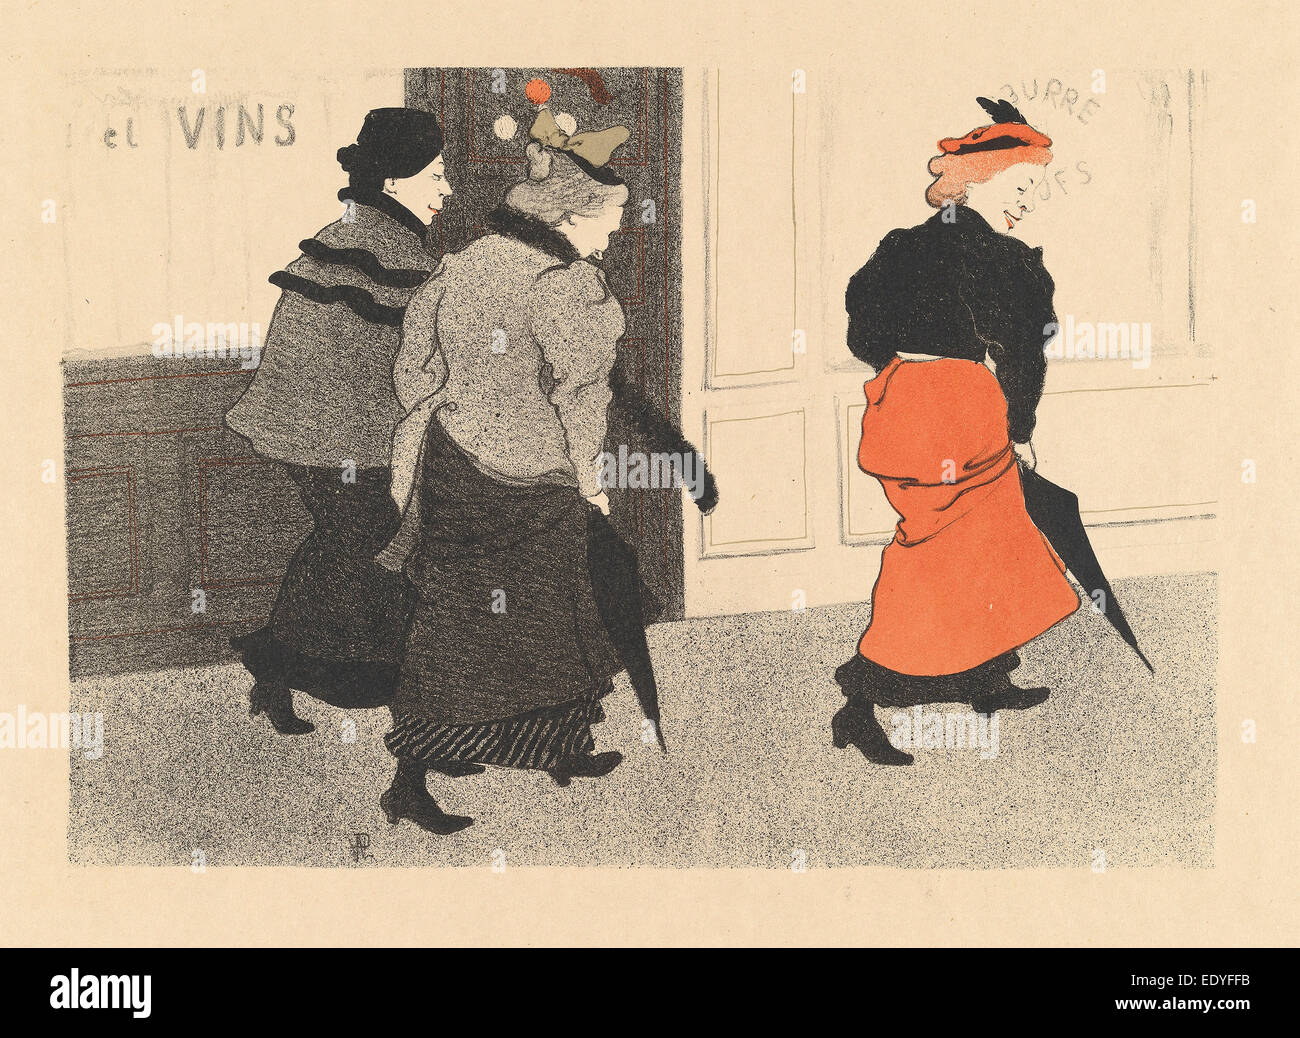 Hermann-Paul, Milliners (Modistes), French, 1864 - 1940, 1894, color lithograph - Stock Image